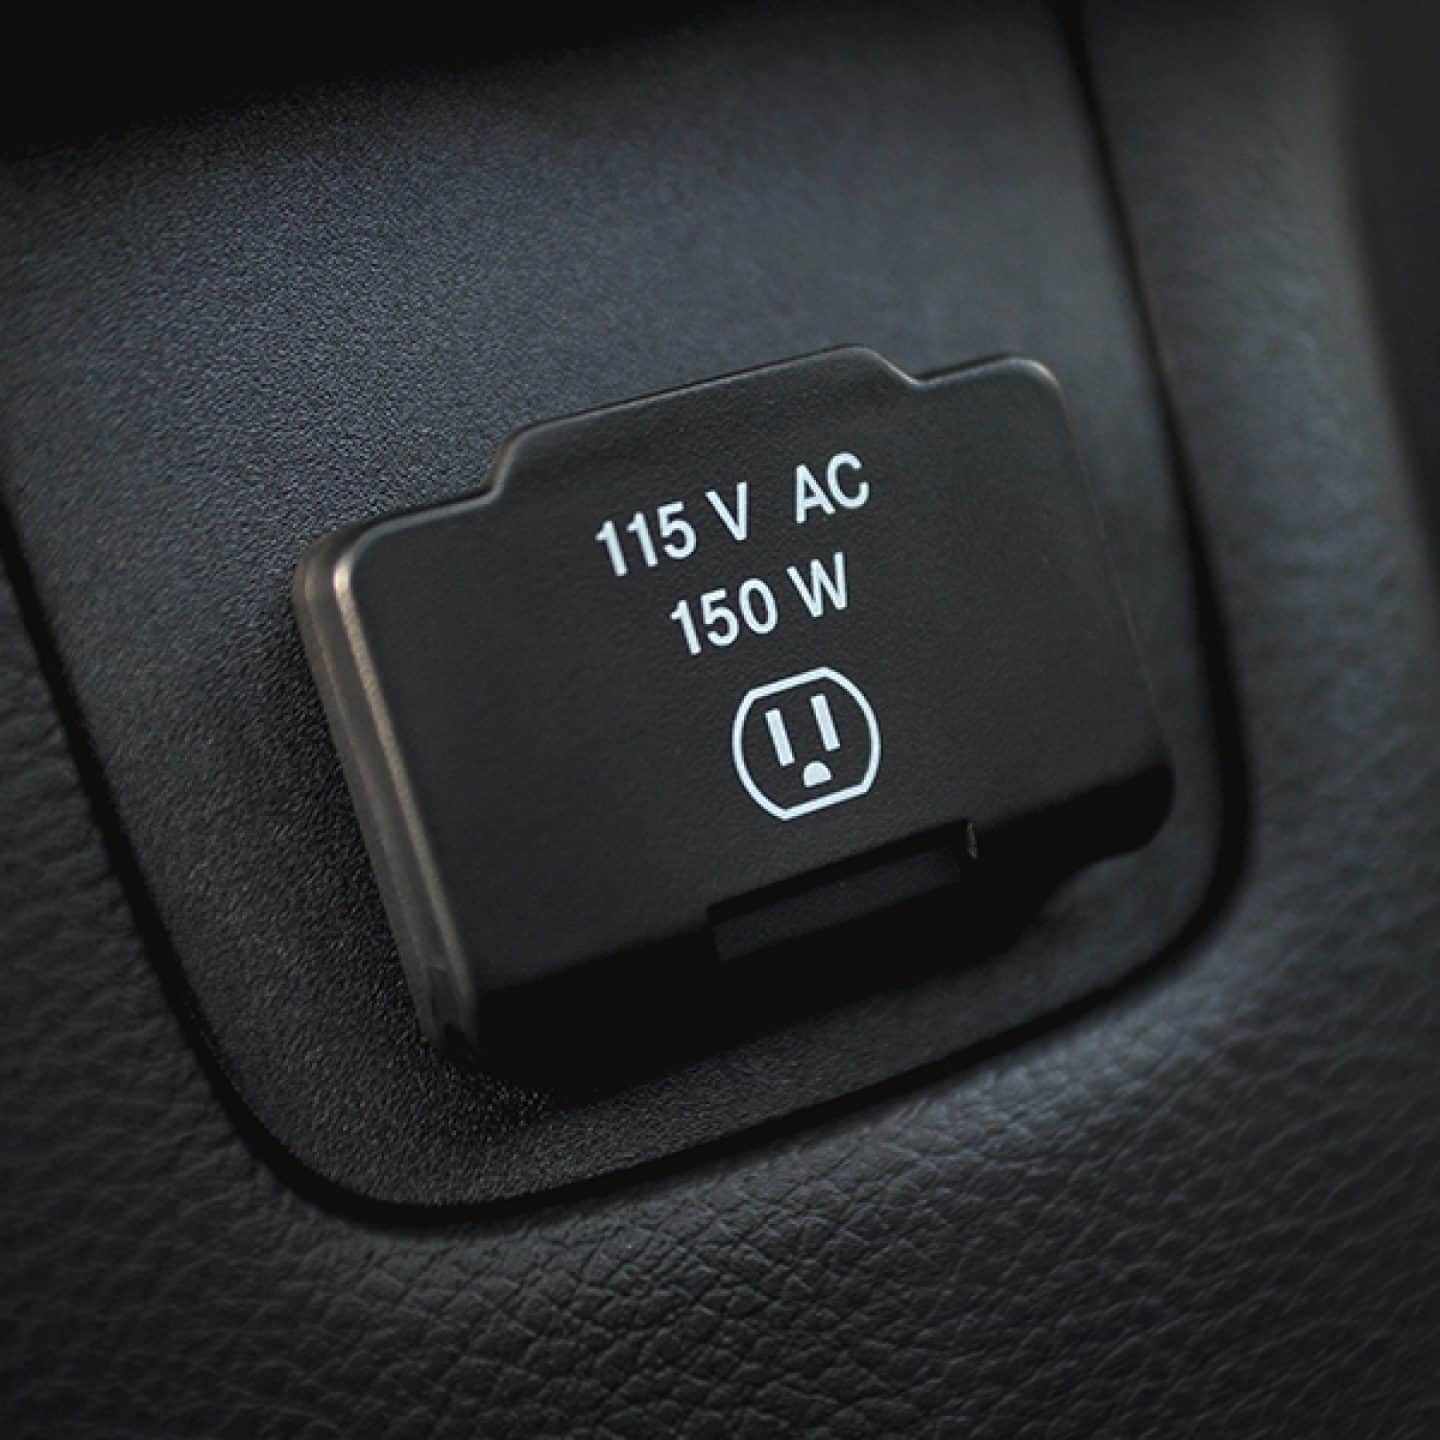 2018 Jeep Wrangler JK 115 Volt Power Outlet